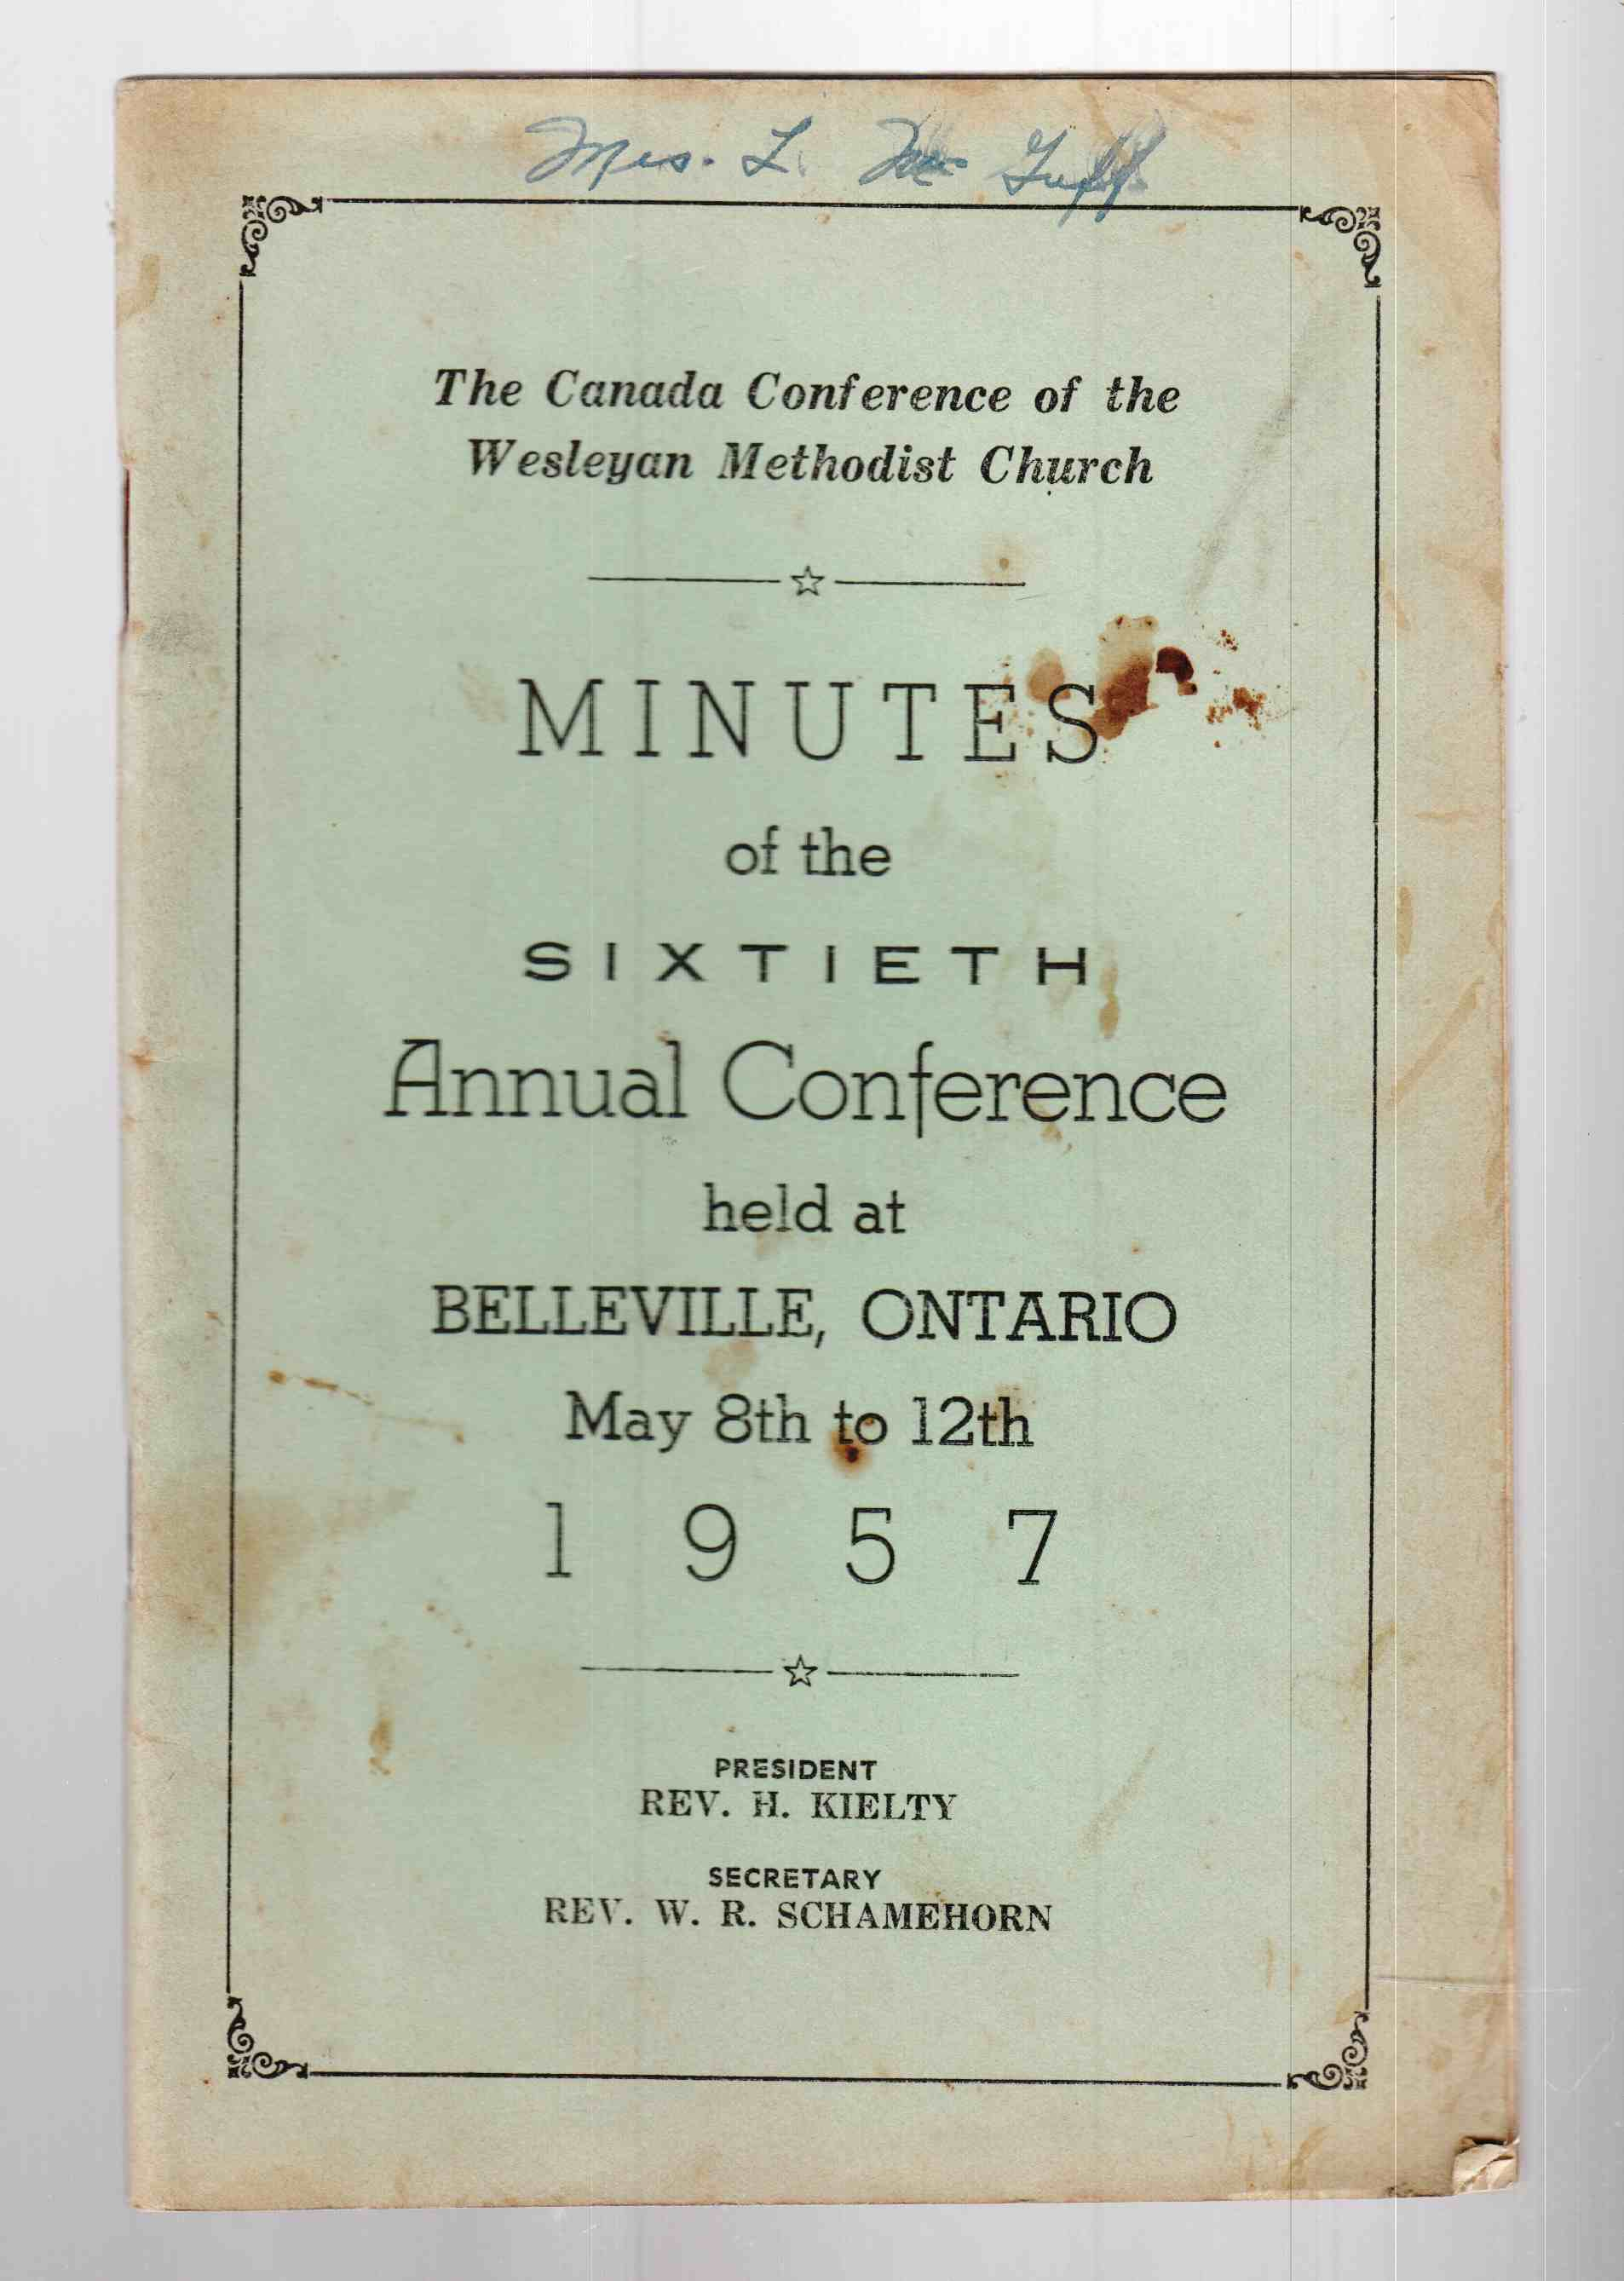 Image for The Canada Conference of the Wesleyan Methodist Church Minutes of the Sixtieth Annual Conference Held At Belleville, Ontario May 8th to 12th, 1957